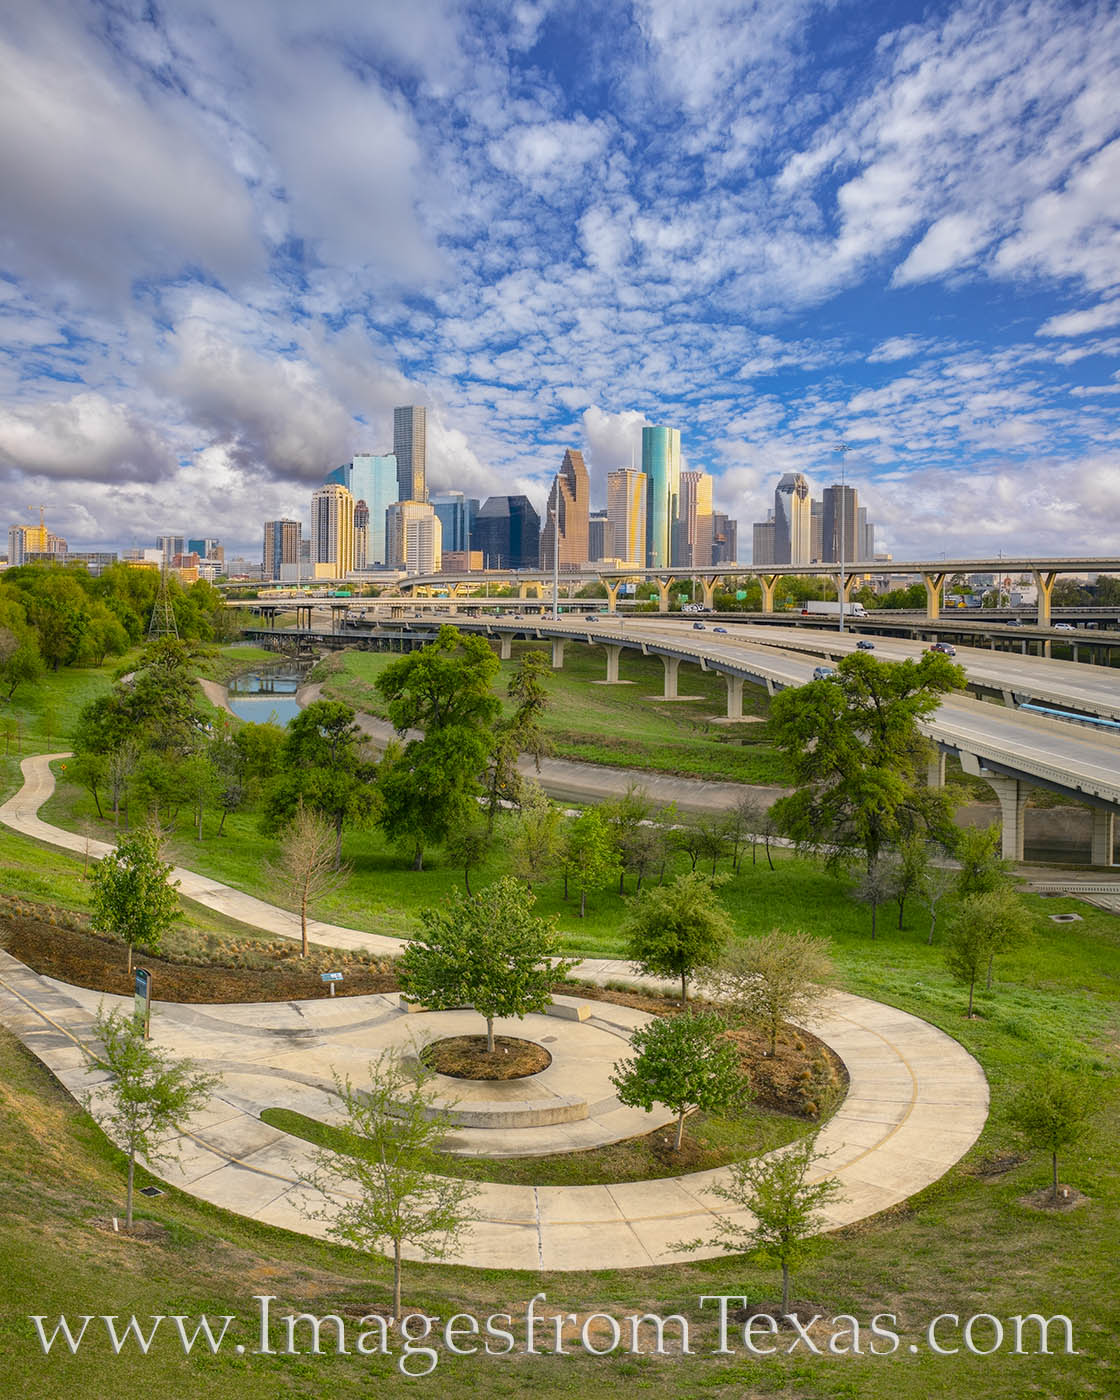 From a small drone, this view shows the Houston skyline on a beautiful March afternoon. The greenbelt of Hogg Park shows off...